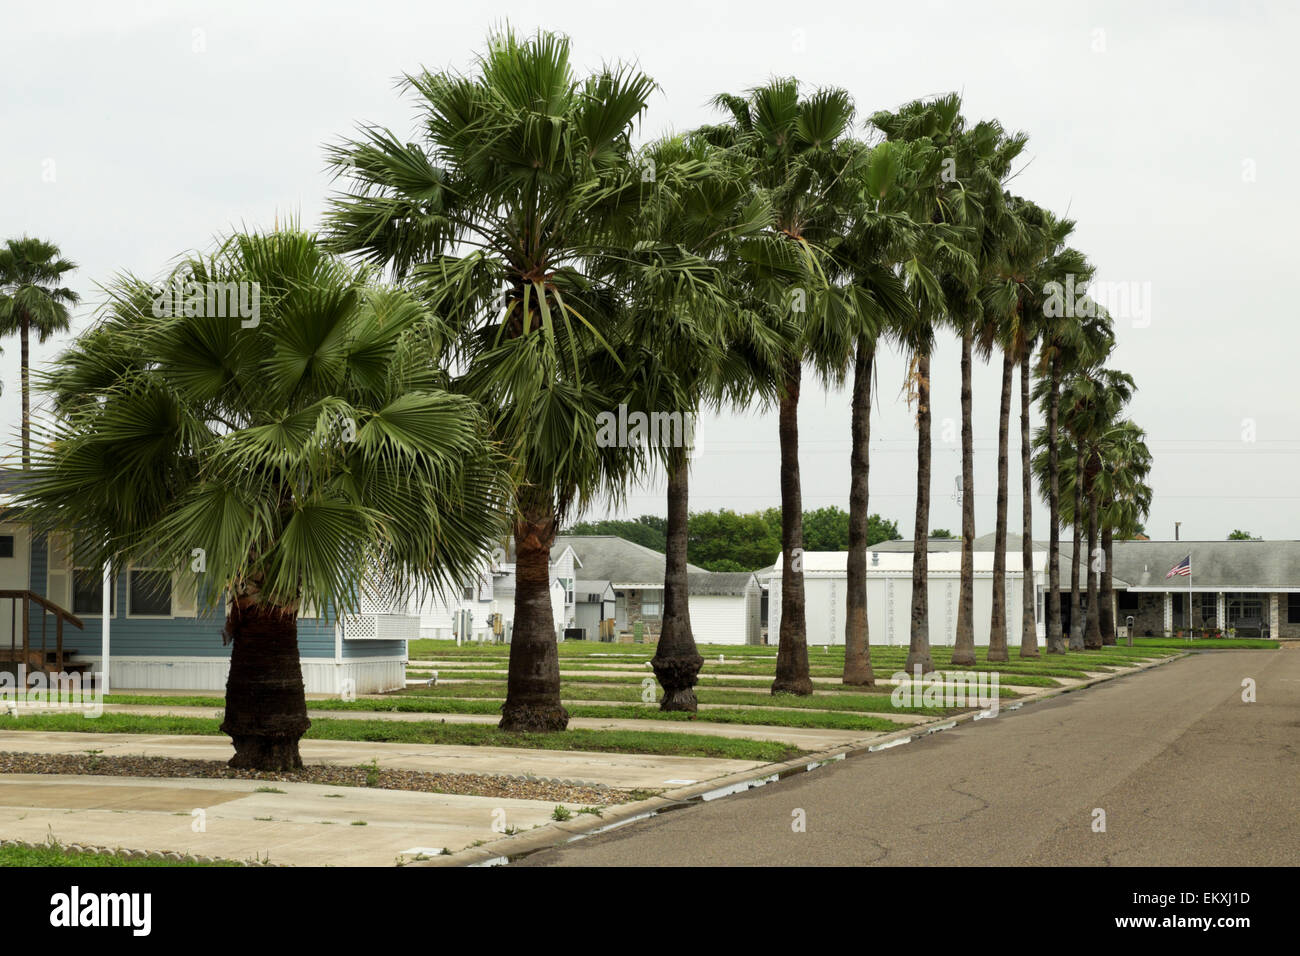 Streetside Row Of Palm Trees At An RV Mobile Home Park In South